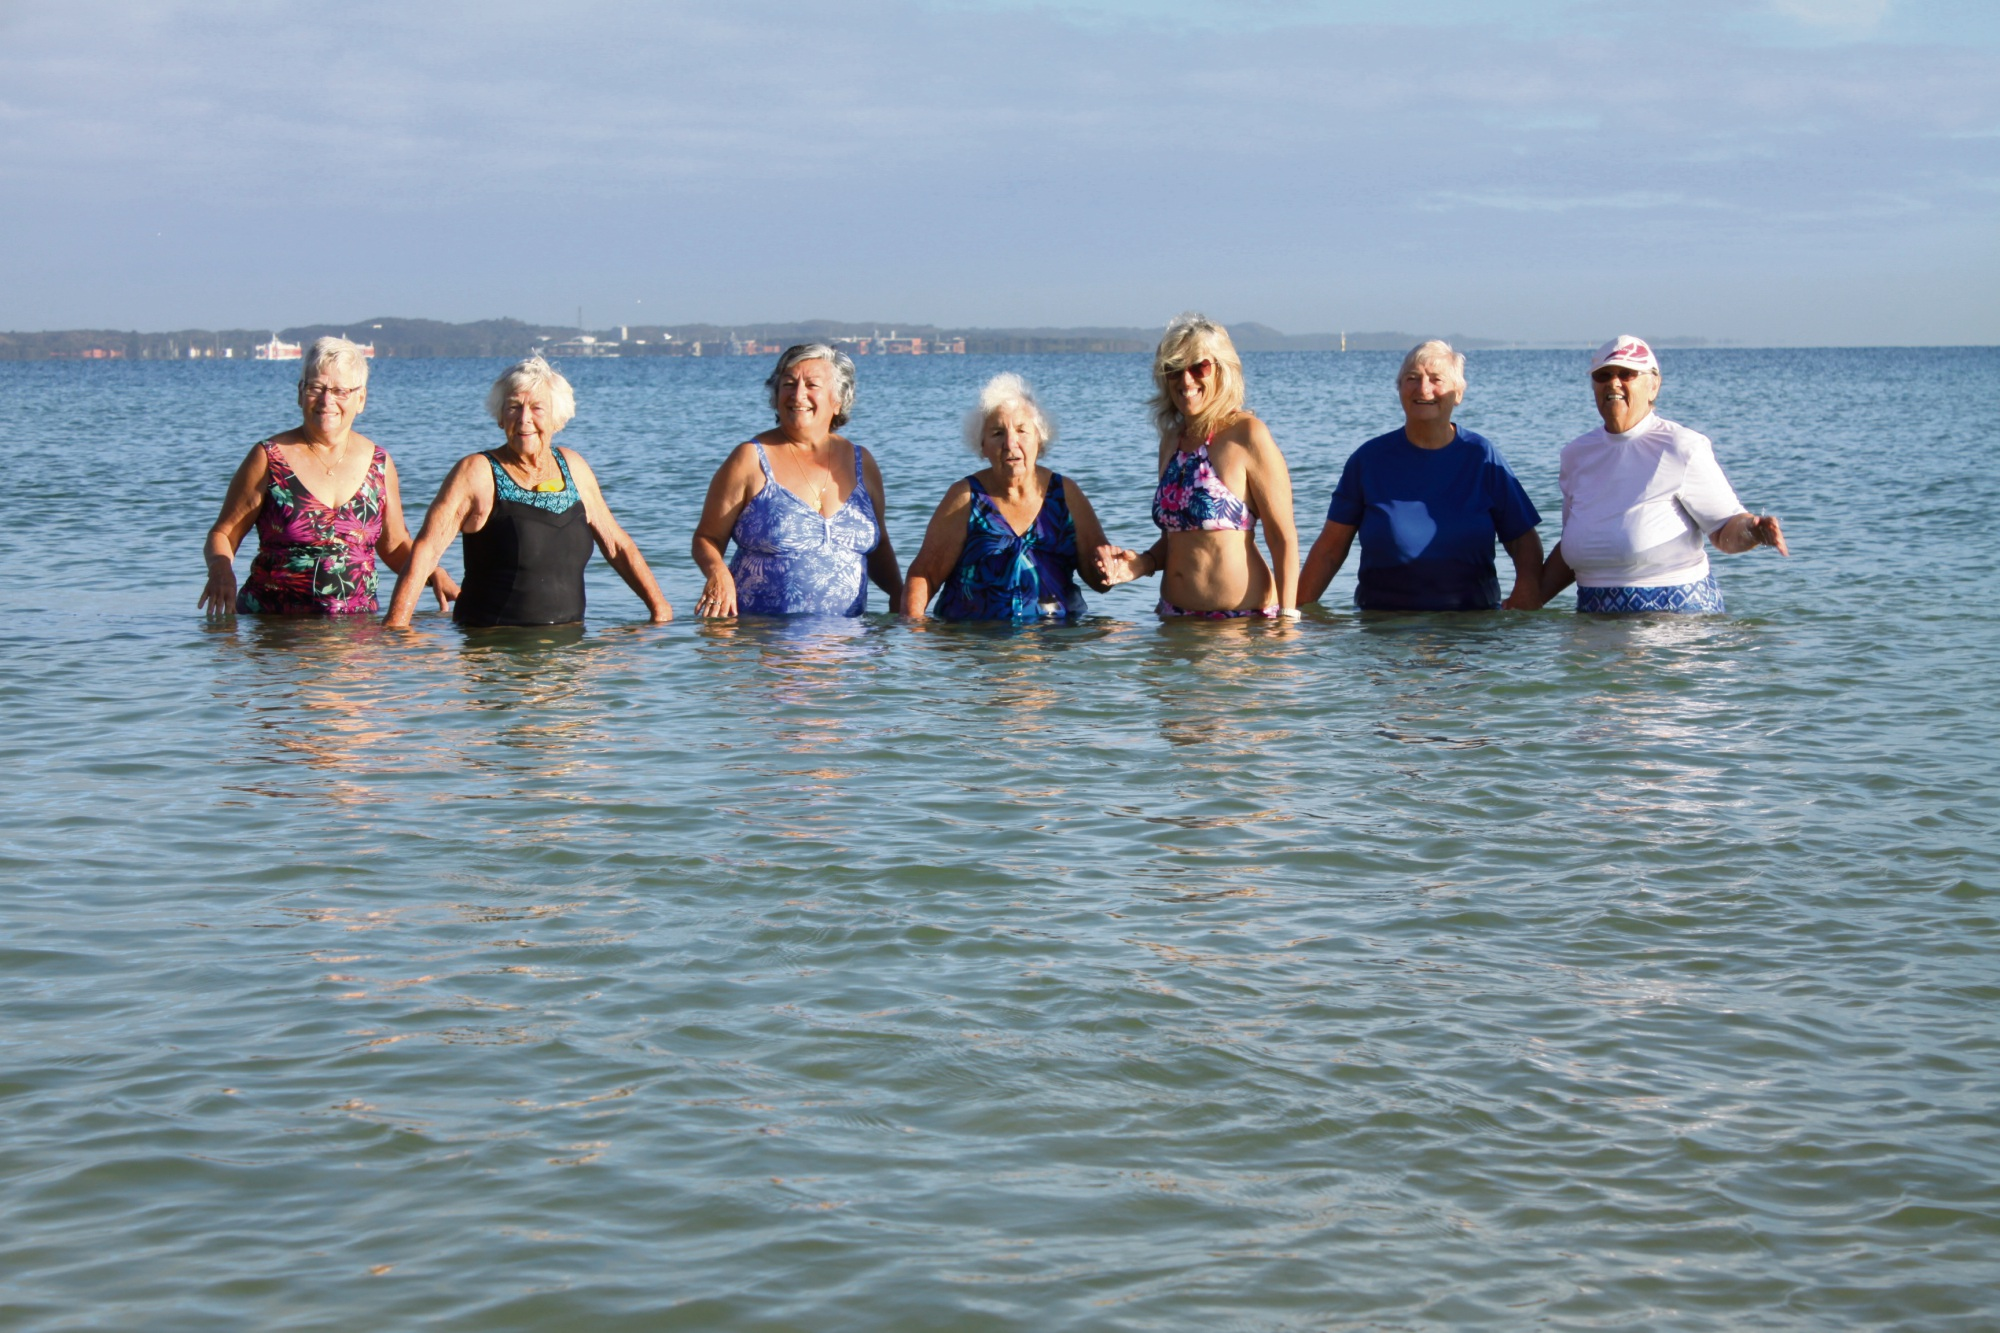 Come rain, hail, shine - or hip replacement - the swimmers show up for their regular time together in the ocean.